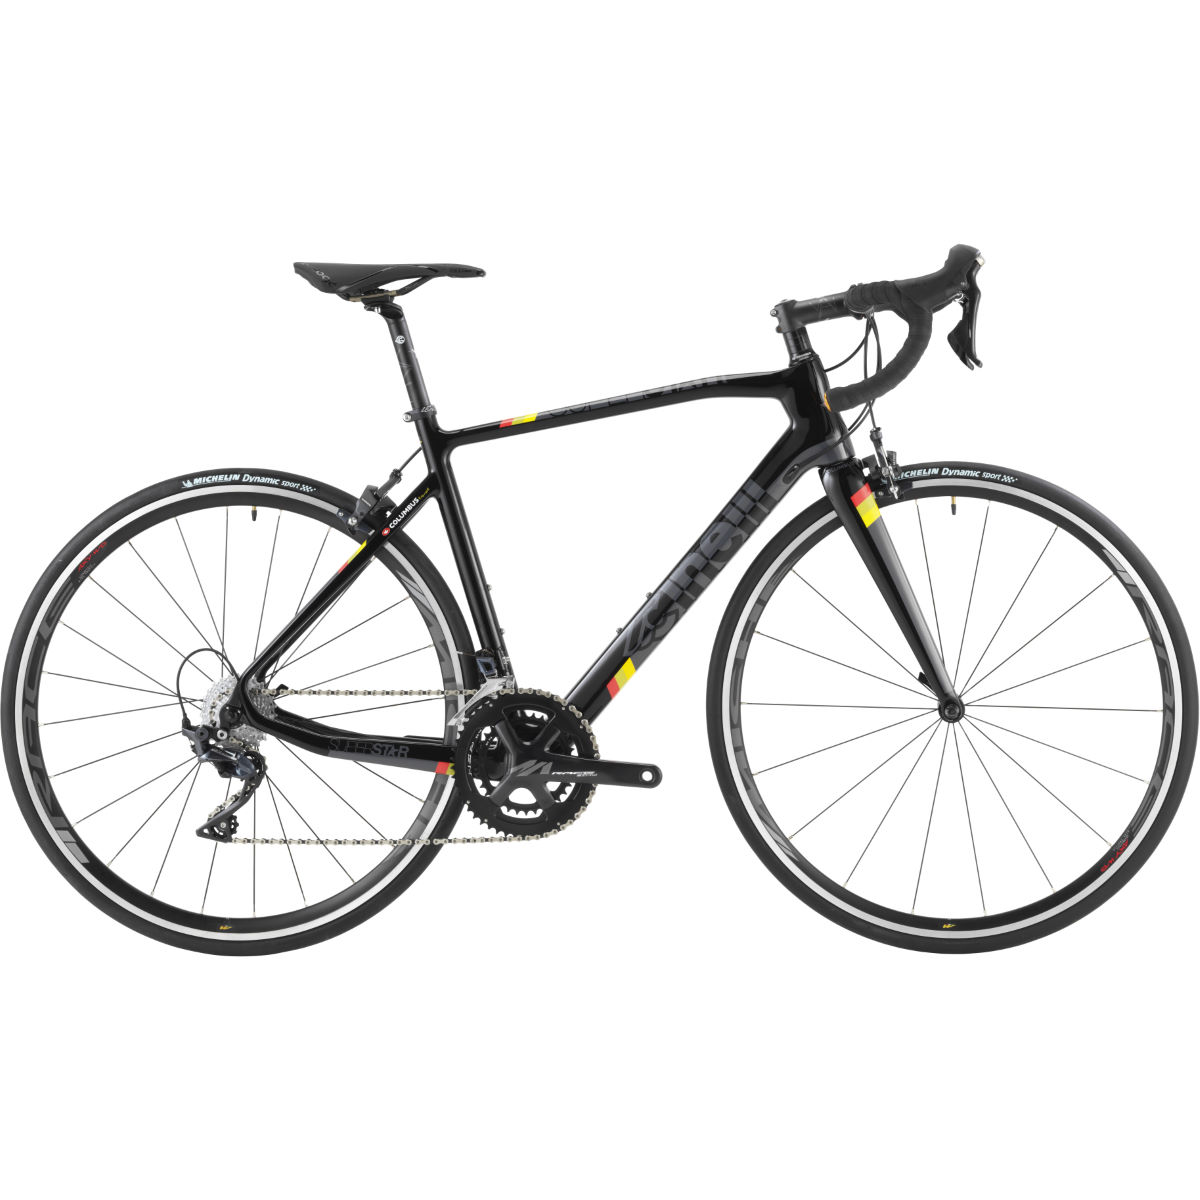 Vélo Cinelli Superstar Ultegra - X Small Stock Bike Black Tie